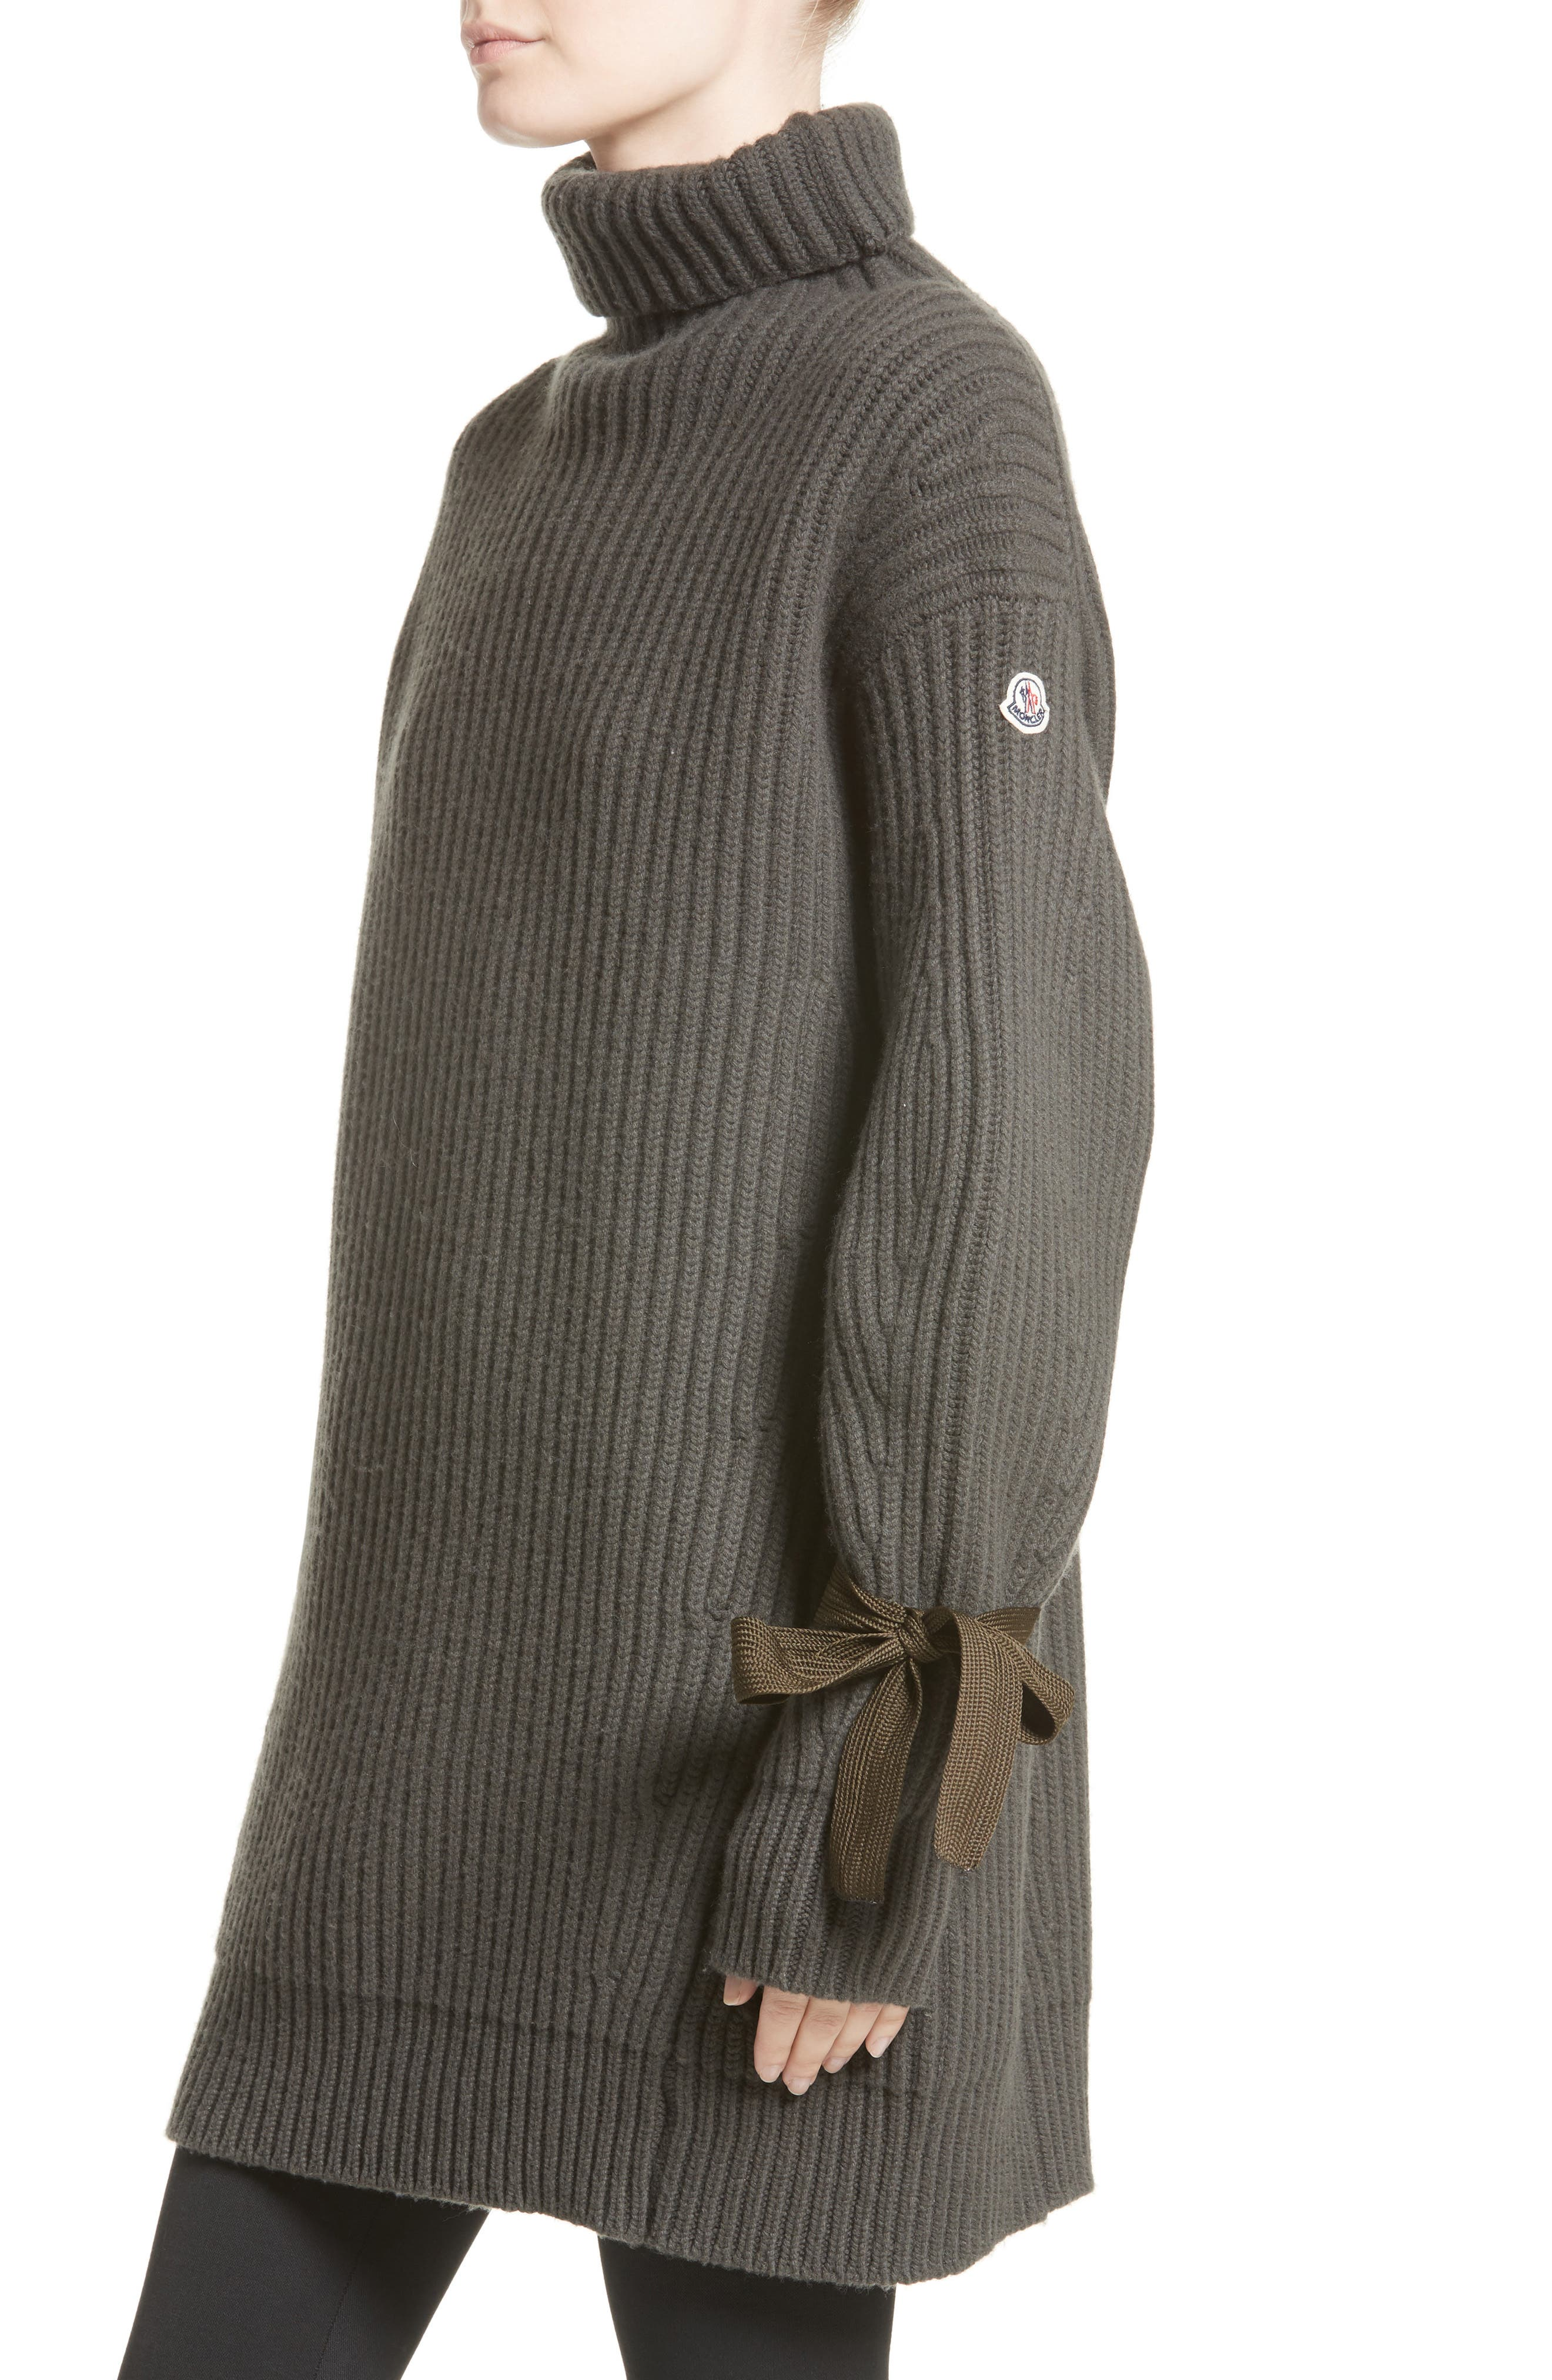 Ciclista Wool & Cashmere Sweater,                             Alternate thumbnail 4, color,                             307